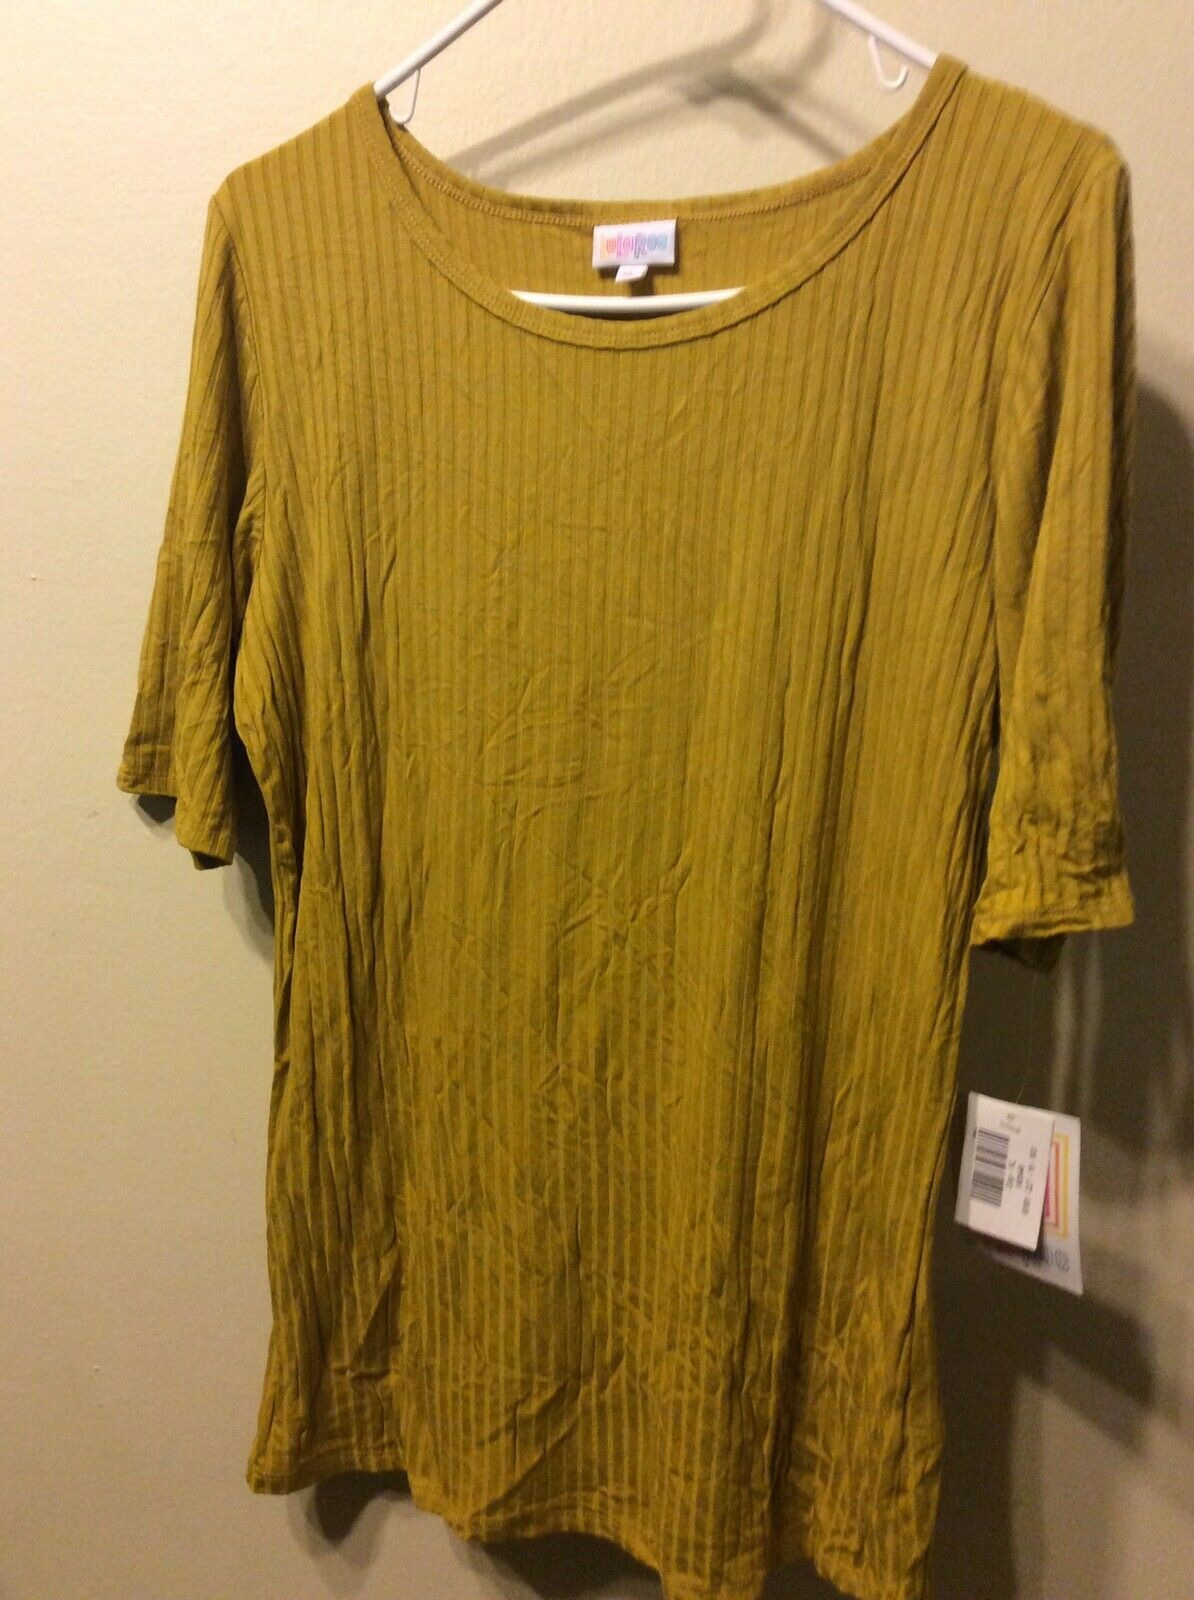 NWT LulaRoe Gigi XL Ribbed golden Yellow Solid Top